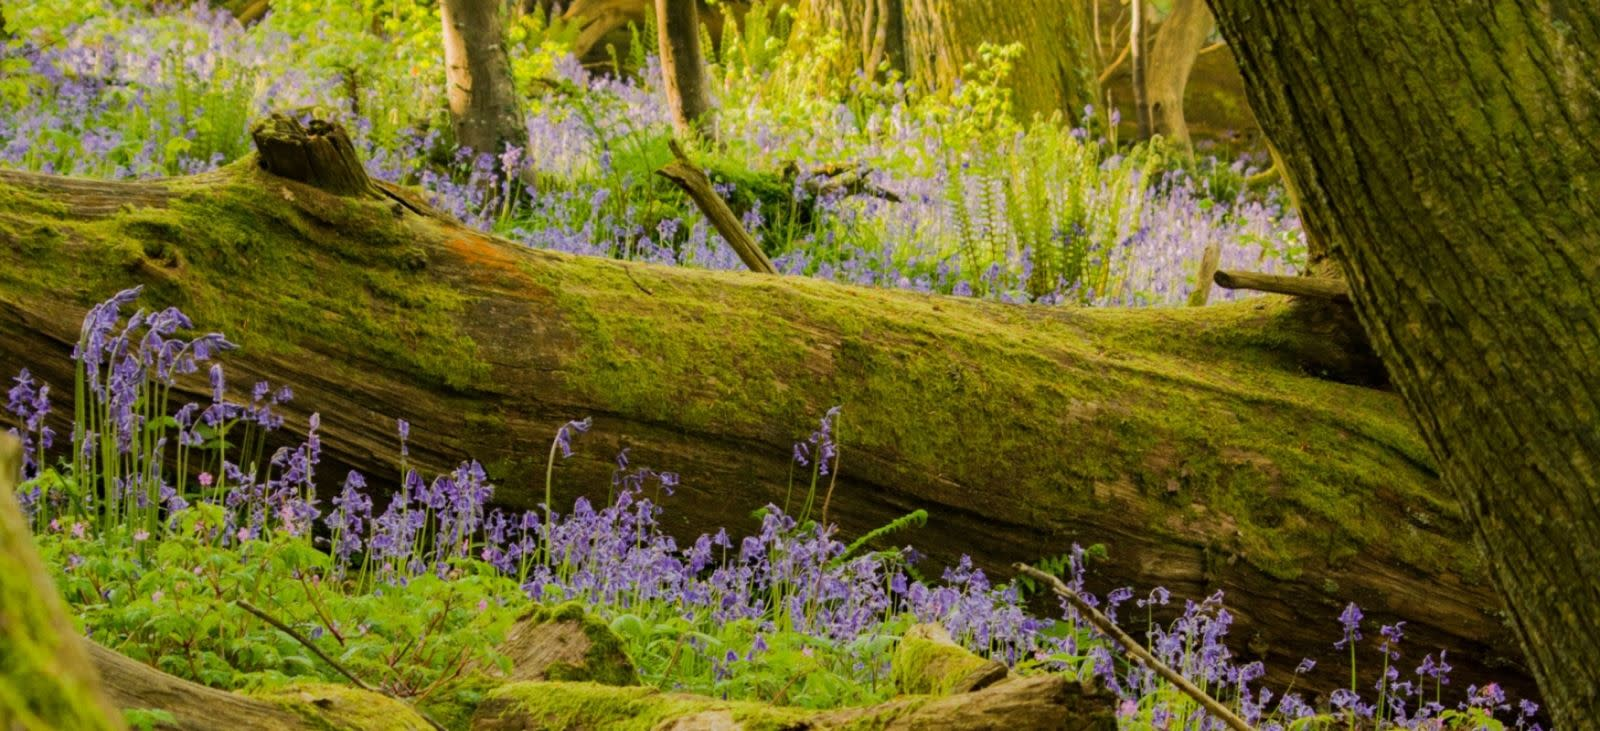 Bluebells at Thorncombe Wood near Dorchester, Dorset. Photo credit to Ian Metcalfe.